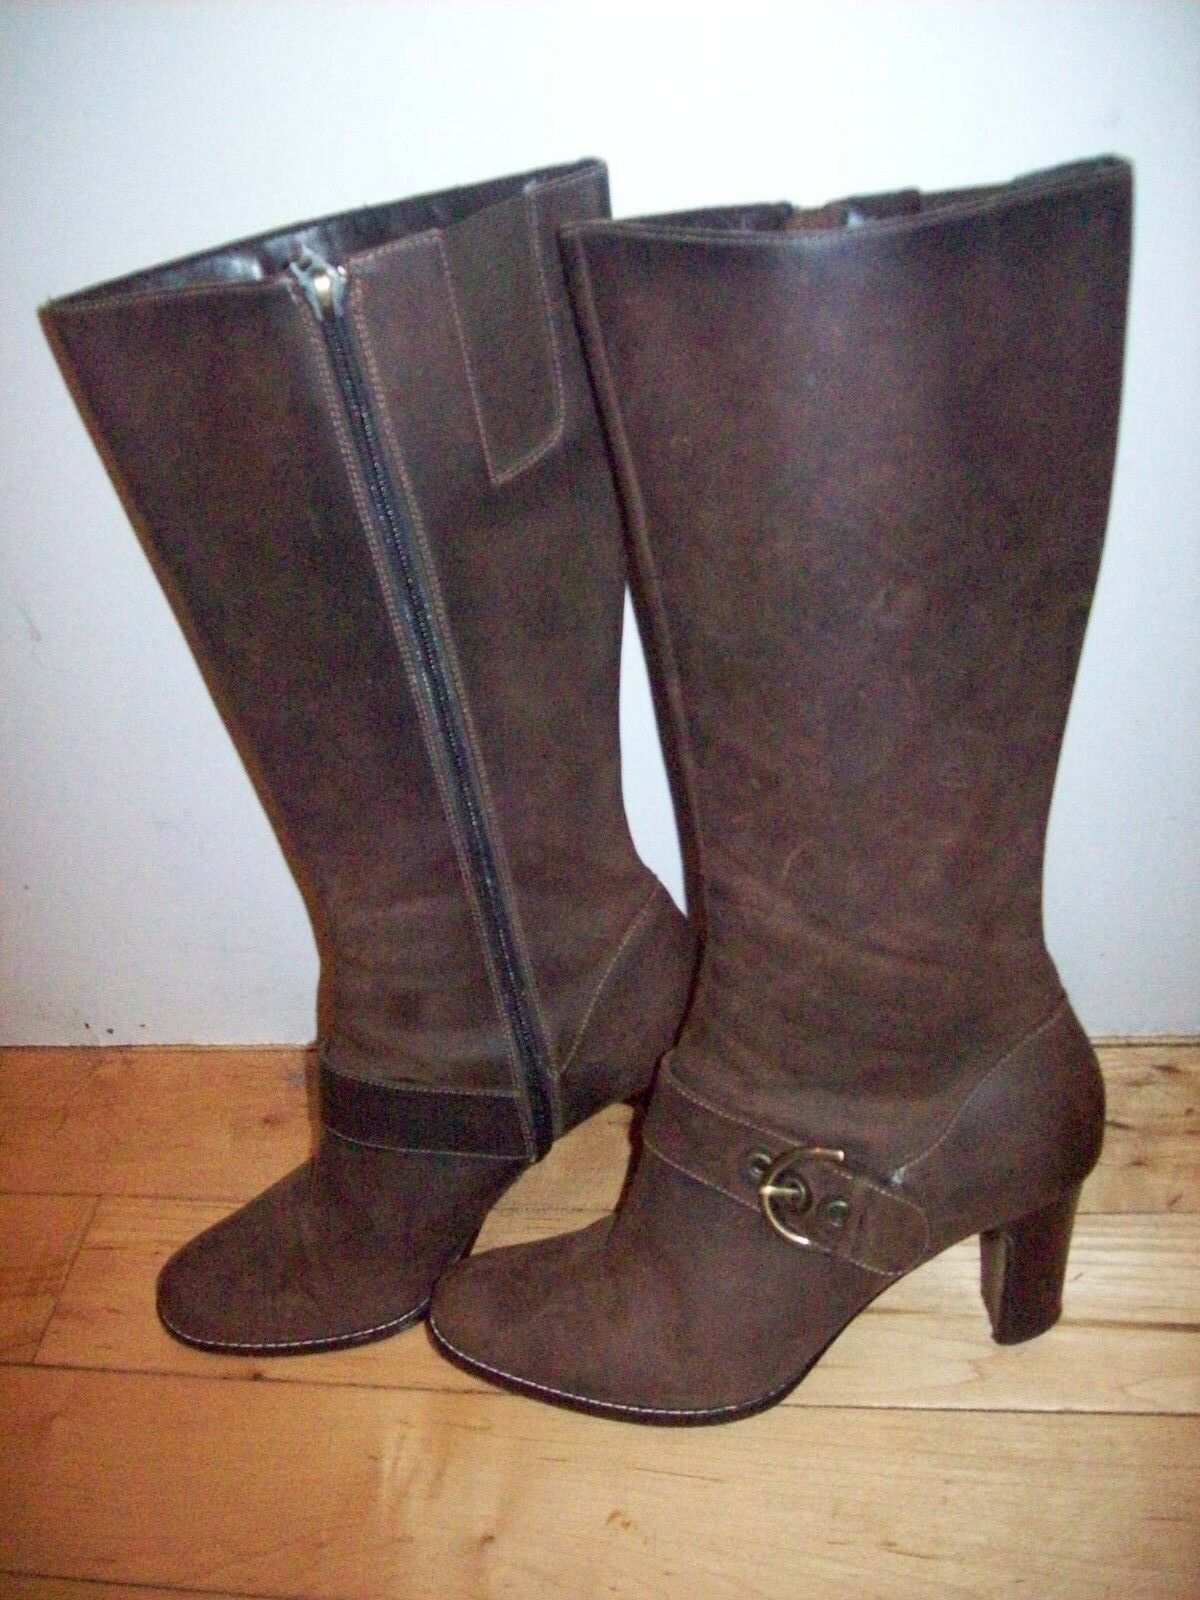 Circa Joan David Bay Distressed Brown Leather Knee Boots Shoes Size 6.5 @ cLOSeT